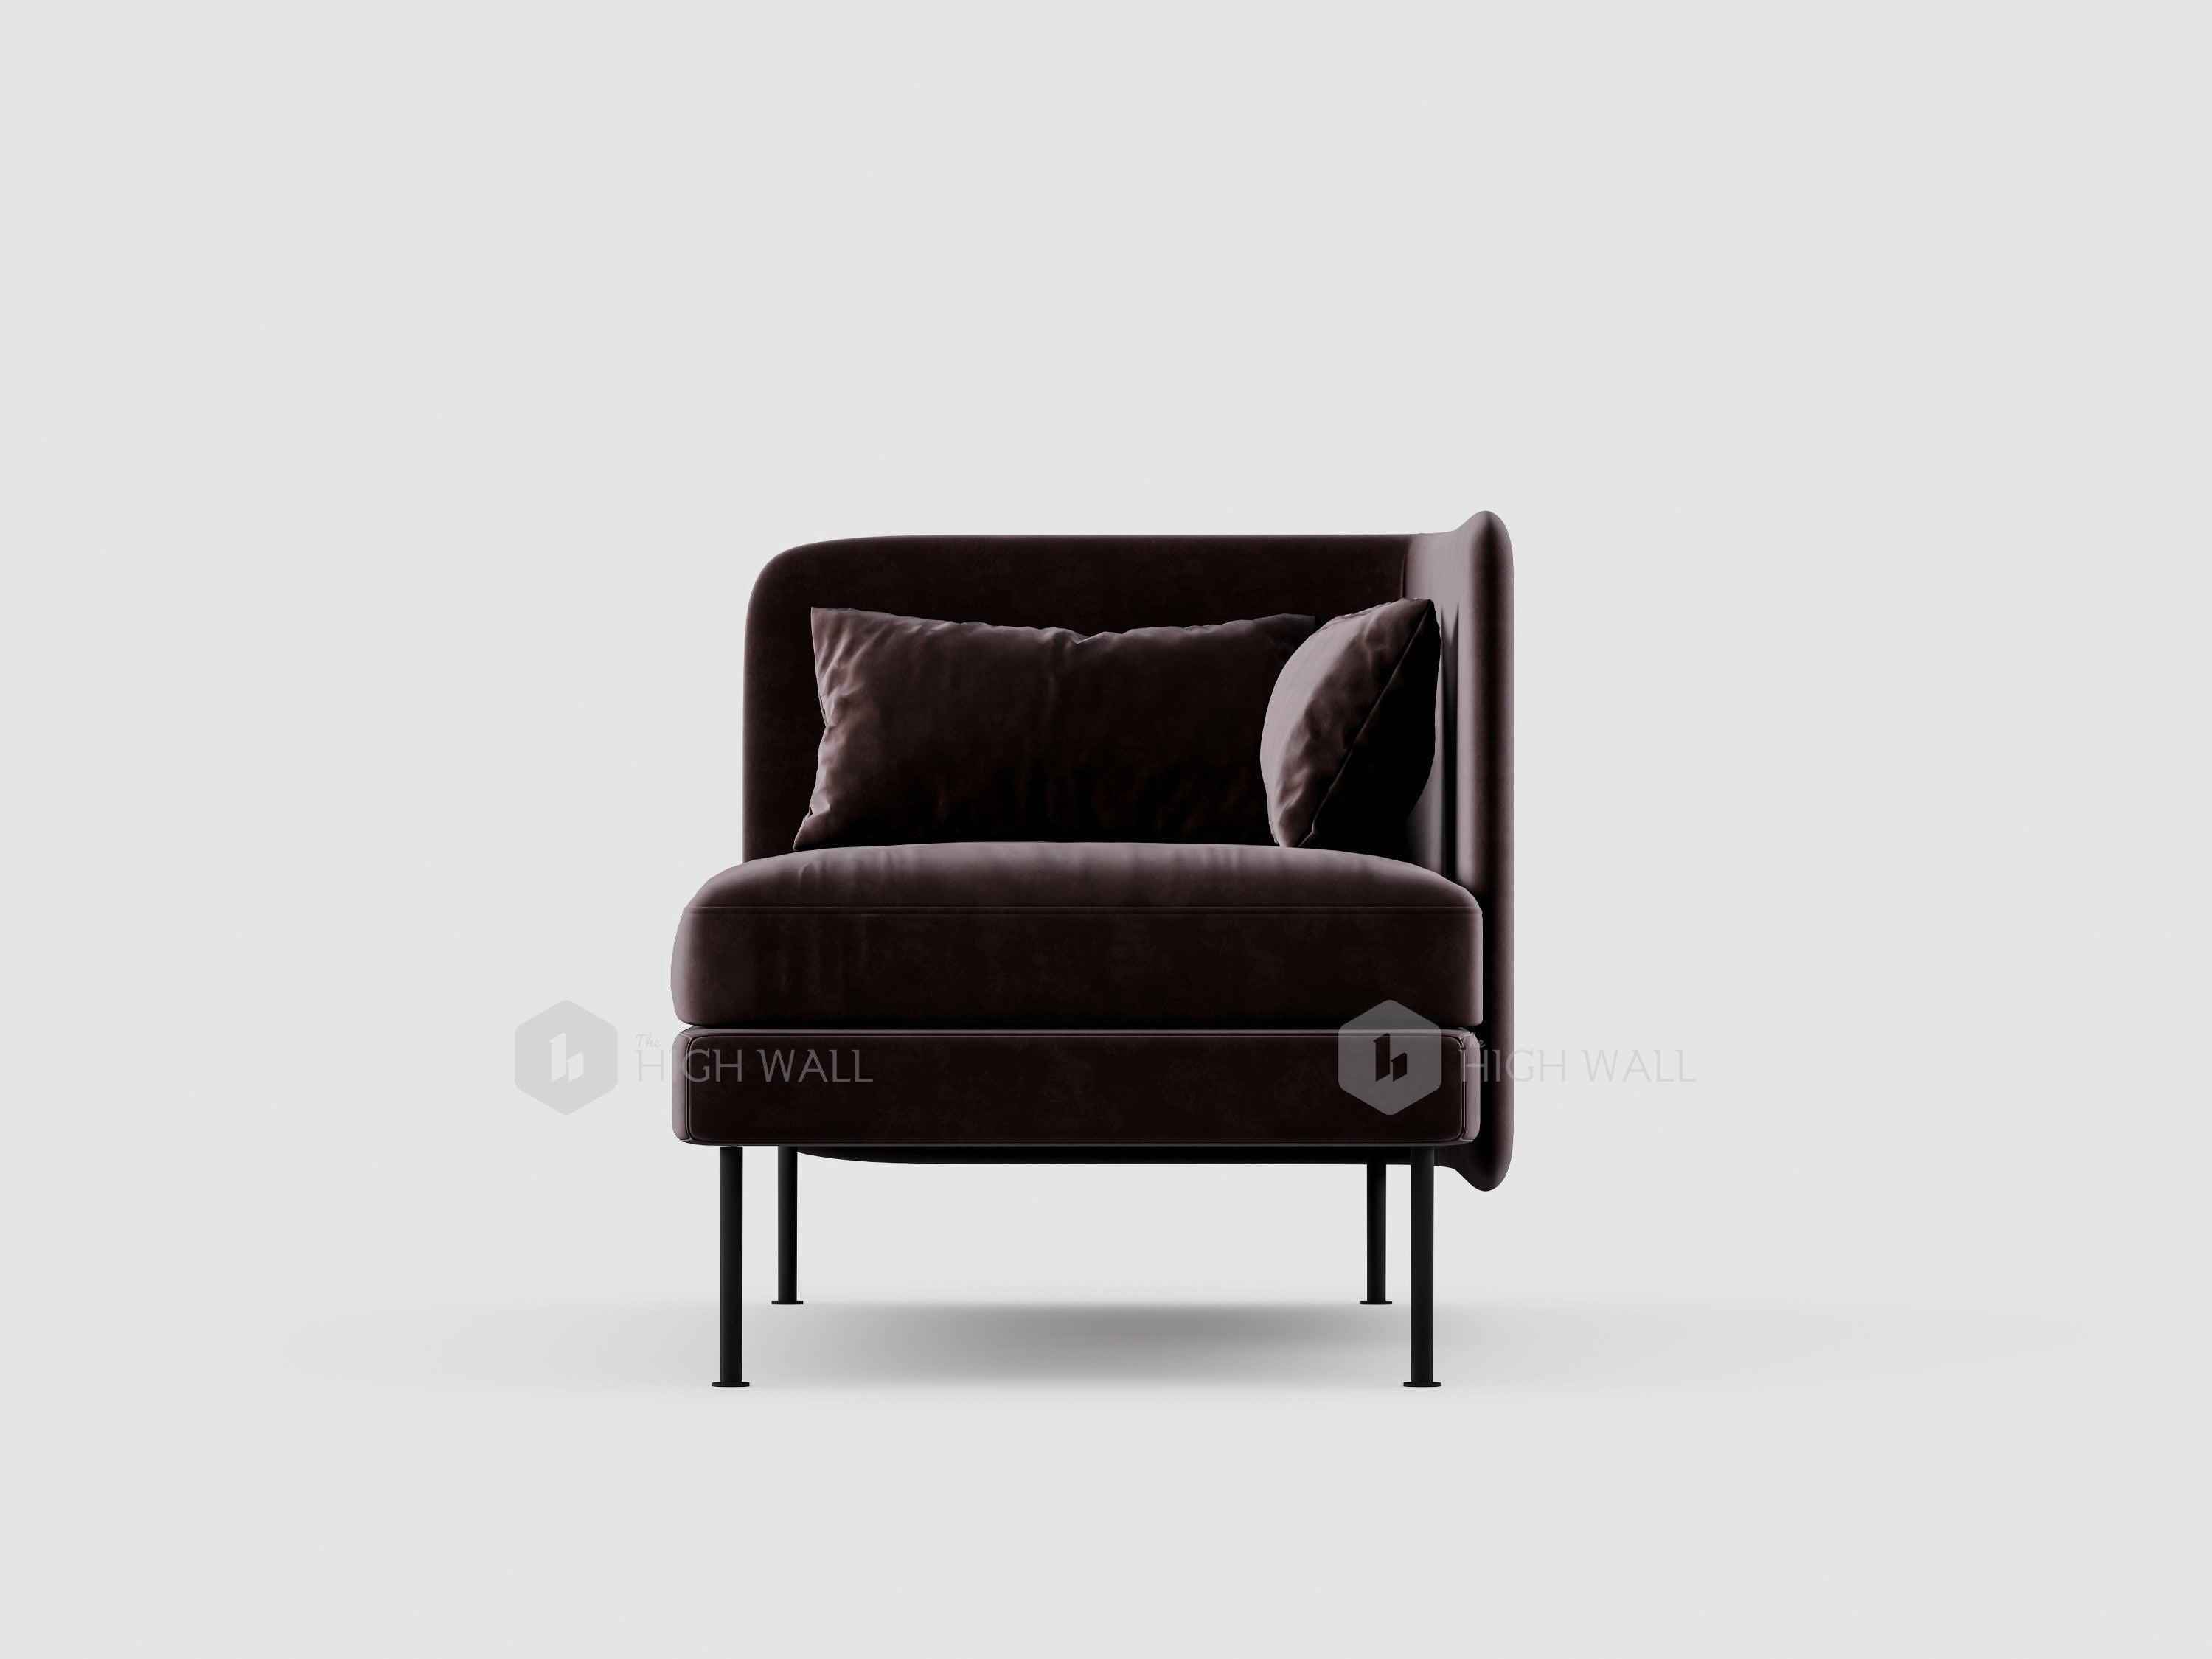 Clitch - Chaise Lounge